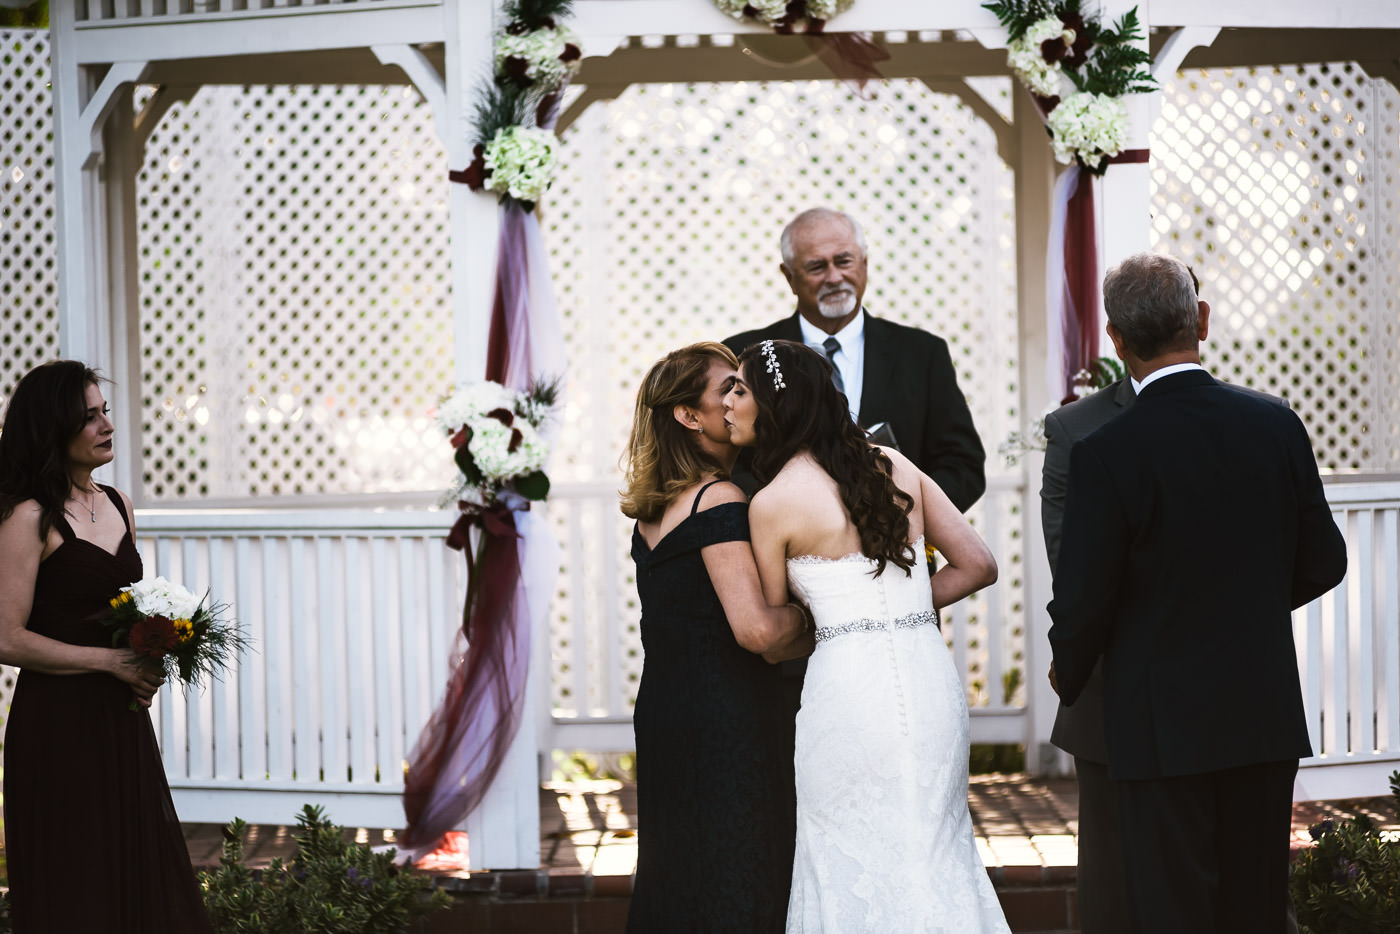 Bride gives her mother a kiss while the groom shakes her father's hand.